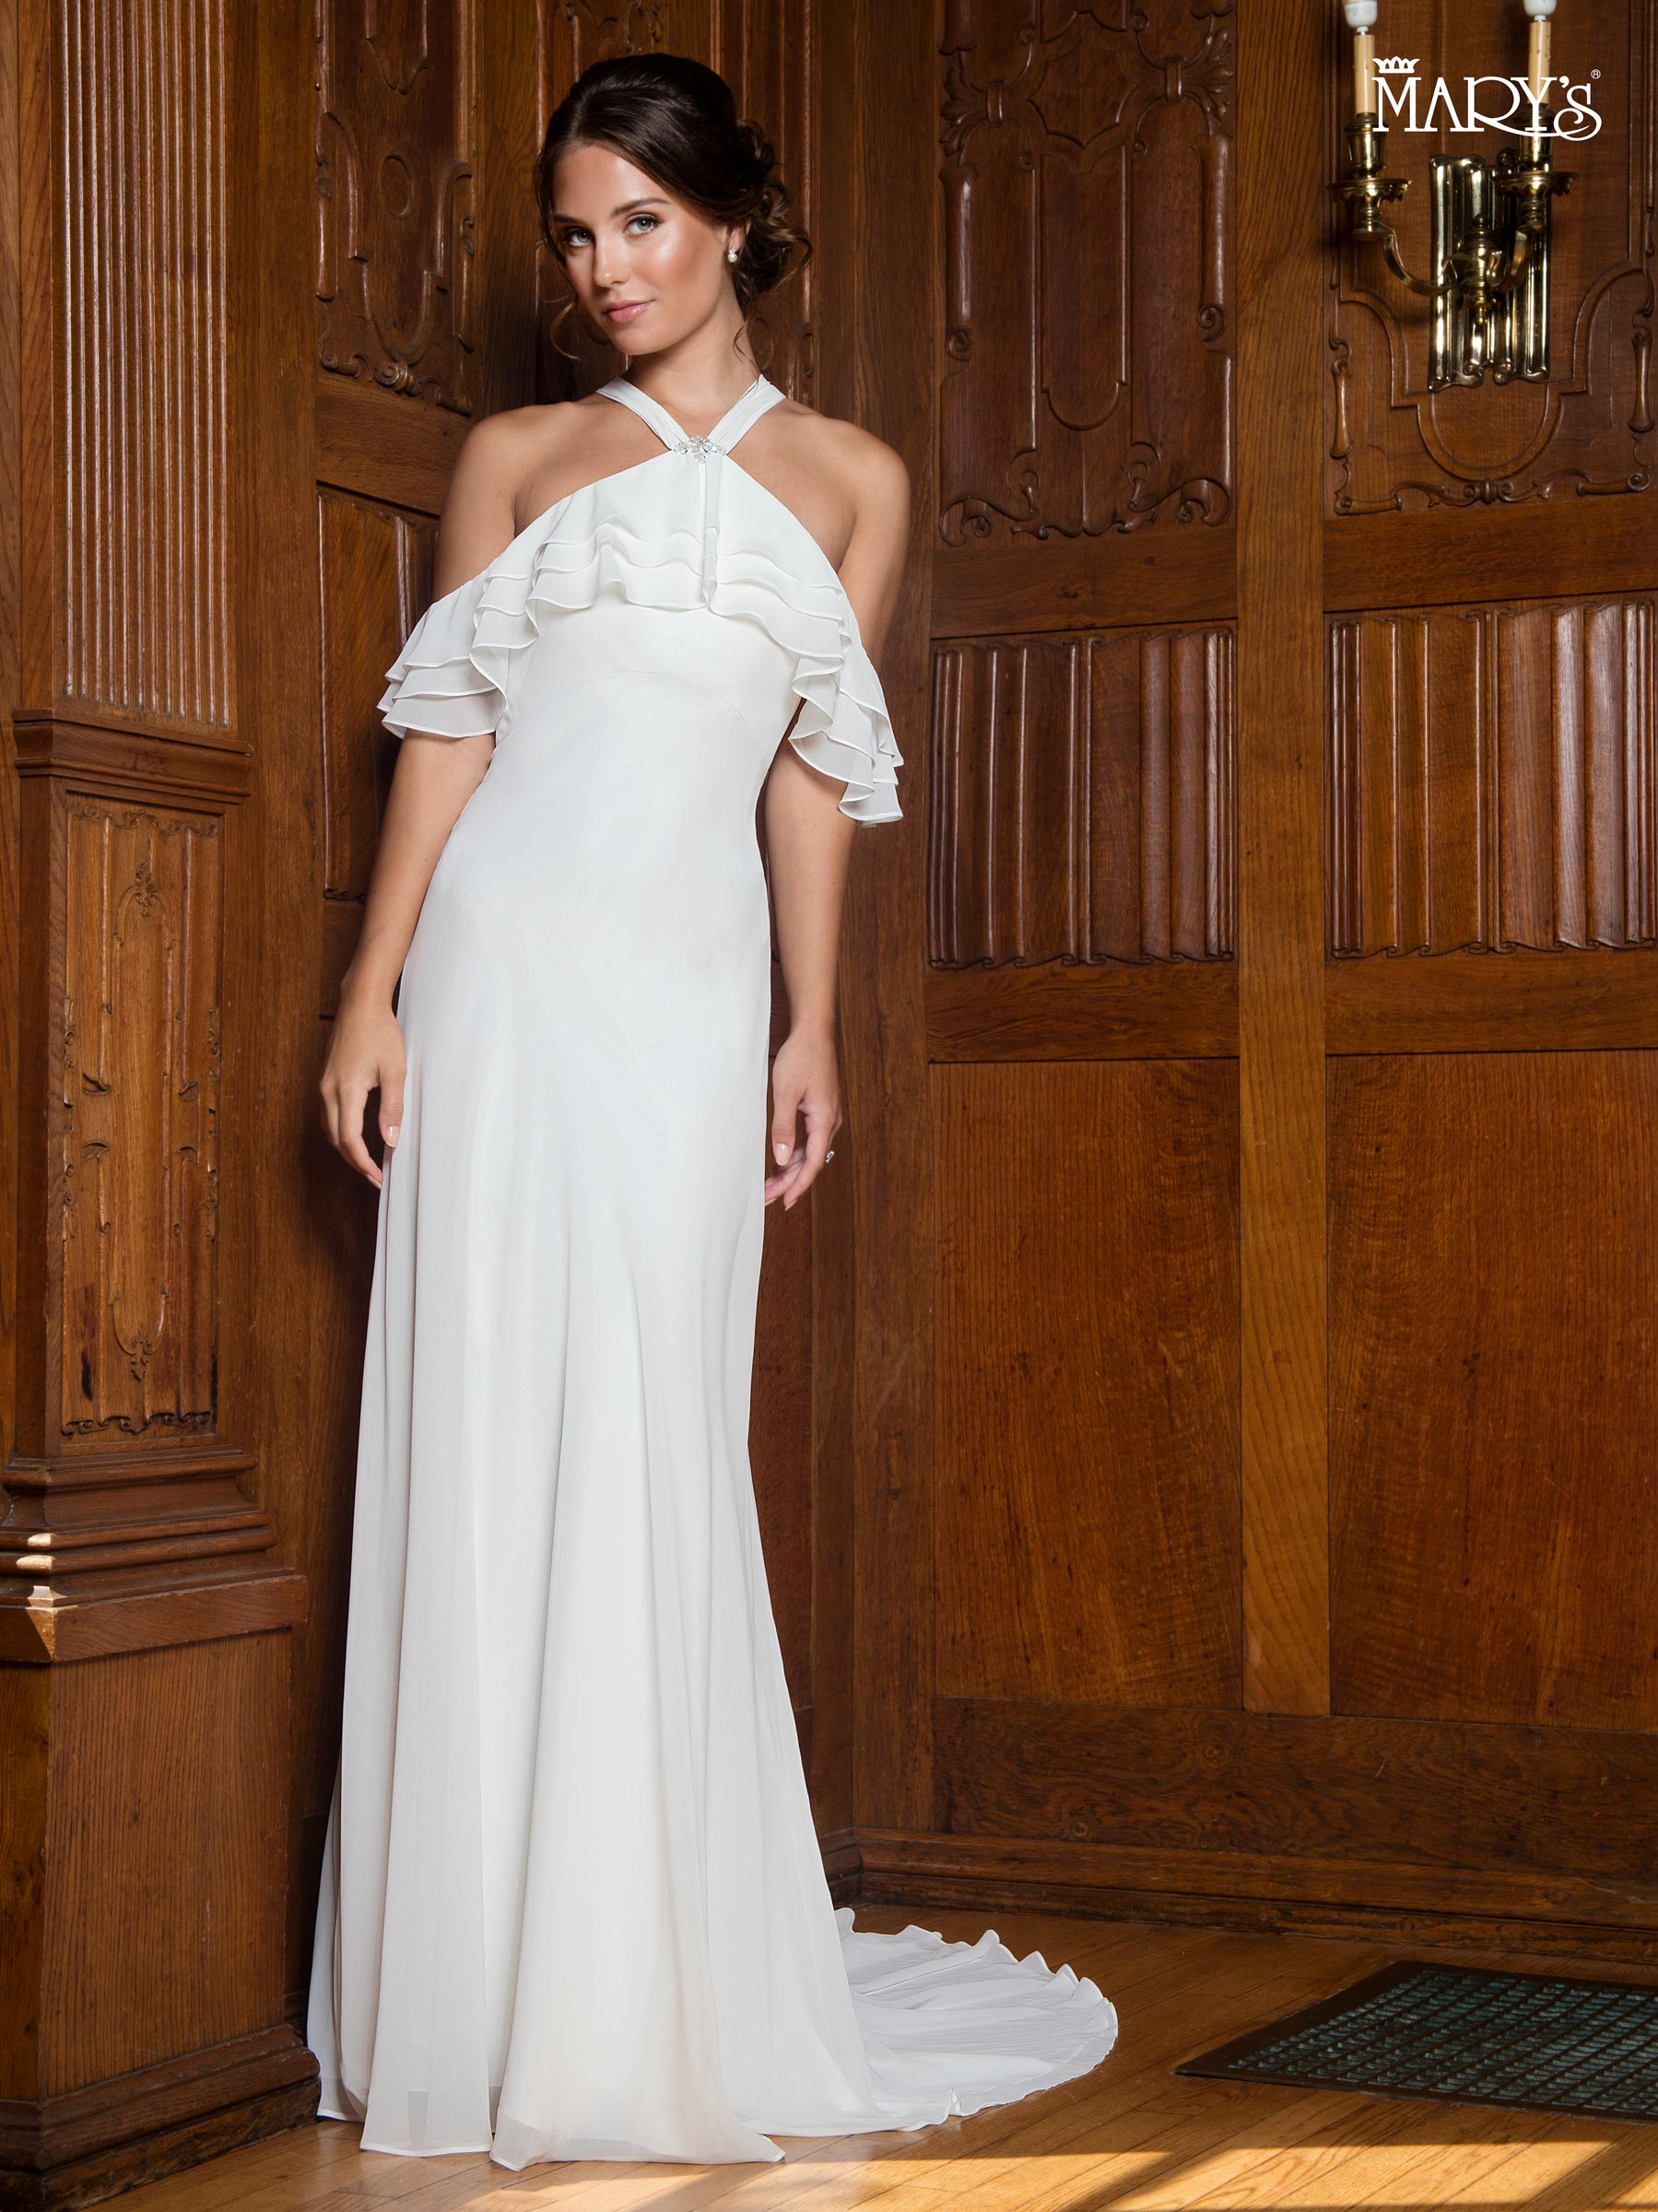 Bridal Wedding Dresses | Mary's | Style - MB1005